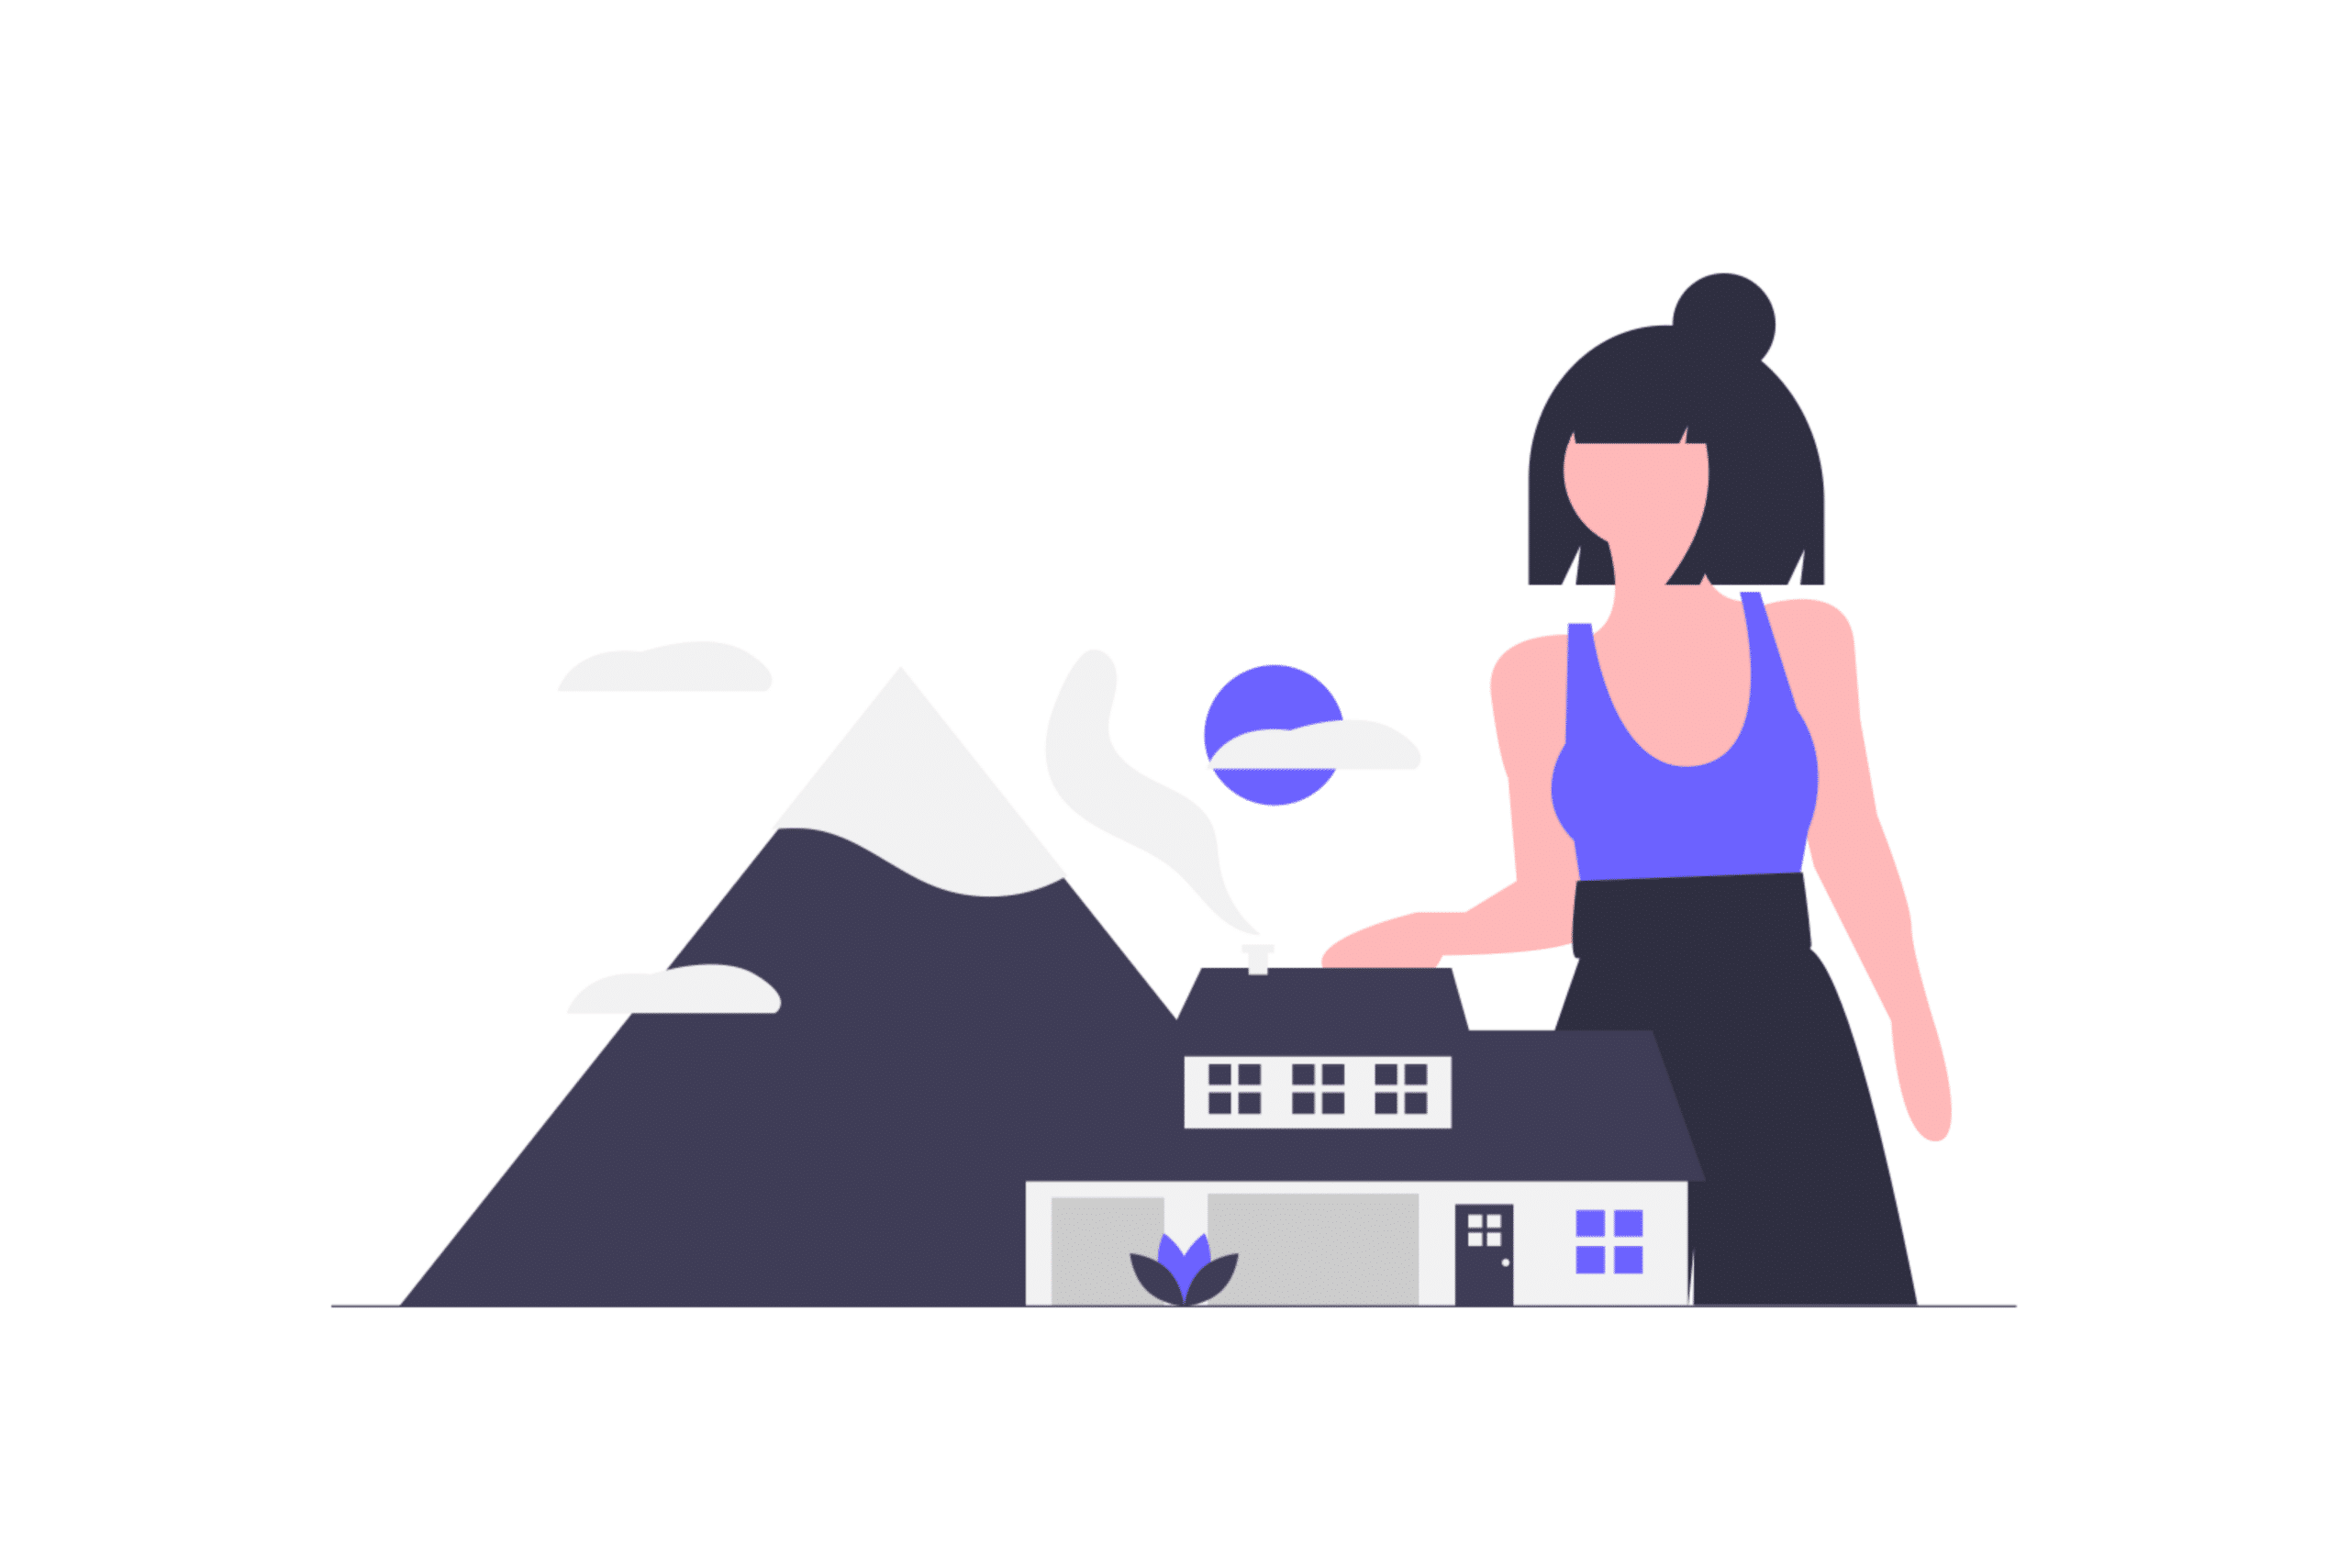 Illustration about a woman inheriting a family property